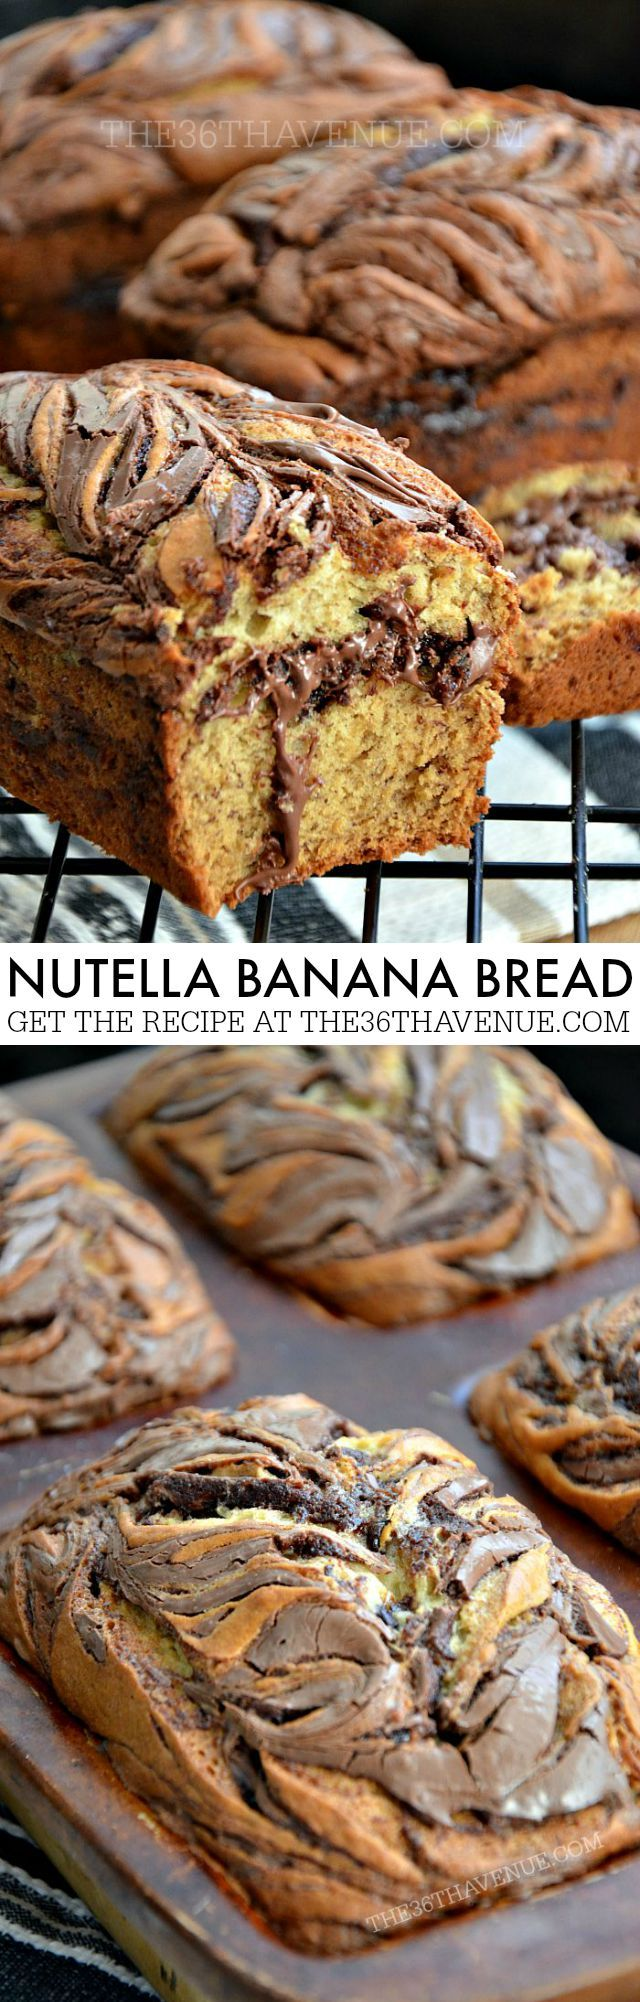 Recipe - Nutella Banana Bread at the36thavenue.com PIN IT NOW AND MAKE IT LATER!                                                                                                                                                                                 More